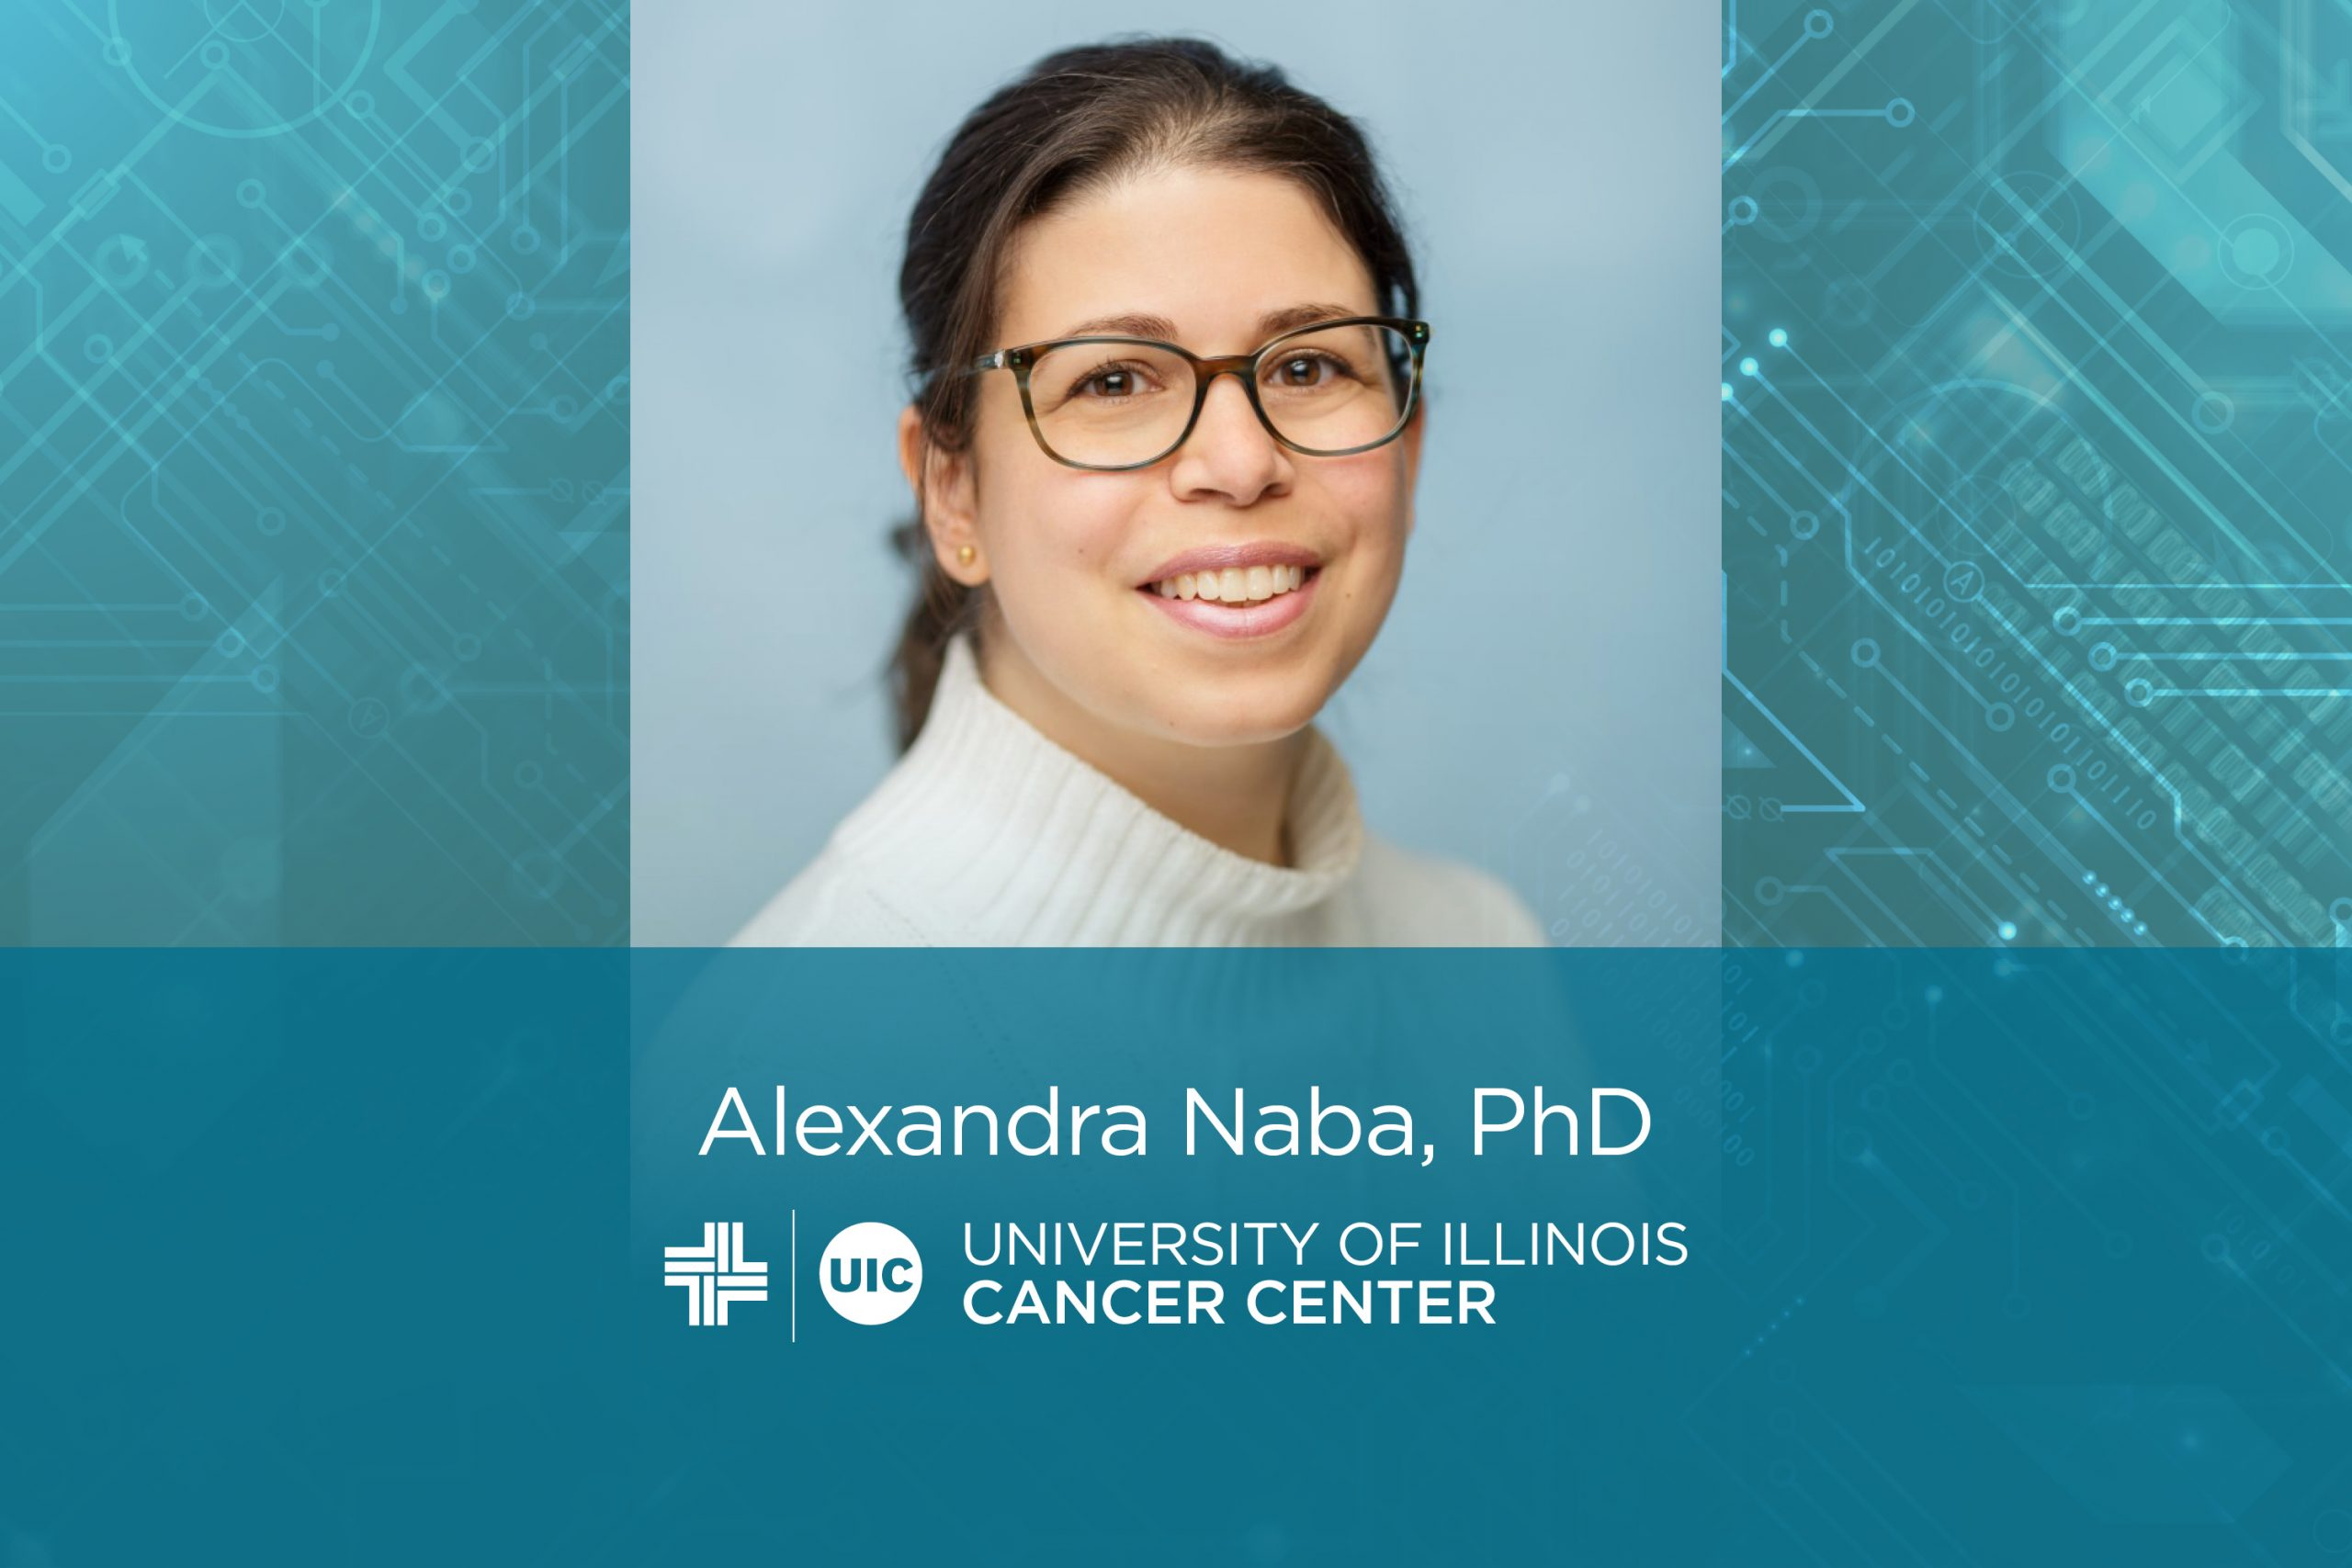 Alexandra Naba photo with her name and the University of Illinois Cancer Center logo